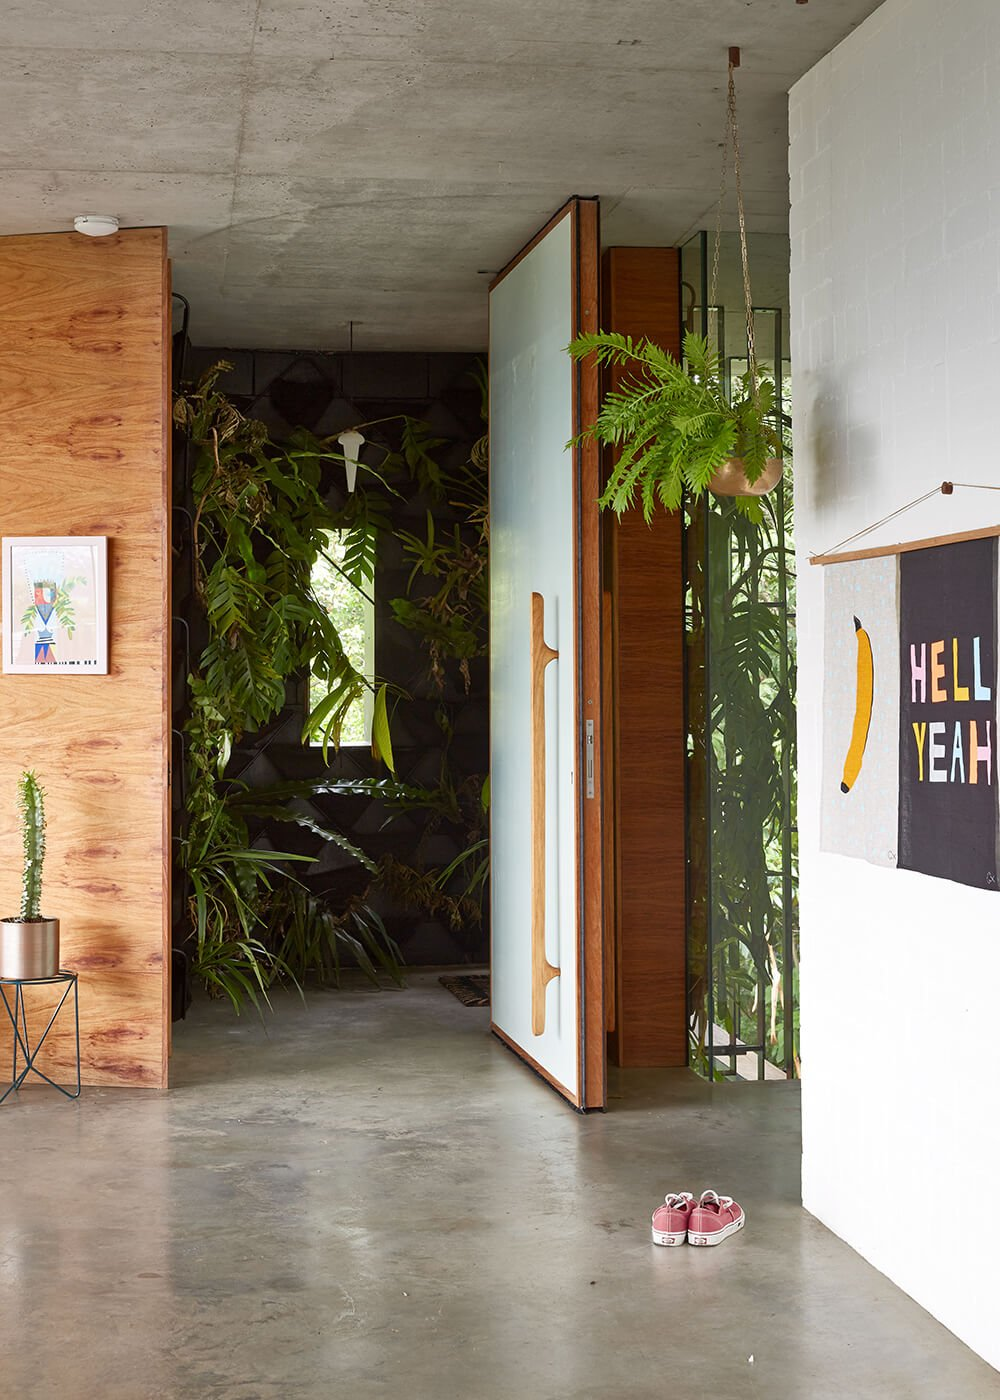 Moving into the interior, we see how the simple white walls and concrete flooring make way for the elegant touchstones of the house, including rich natural wood and plant life.